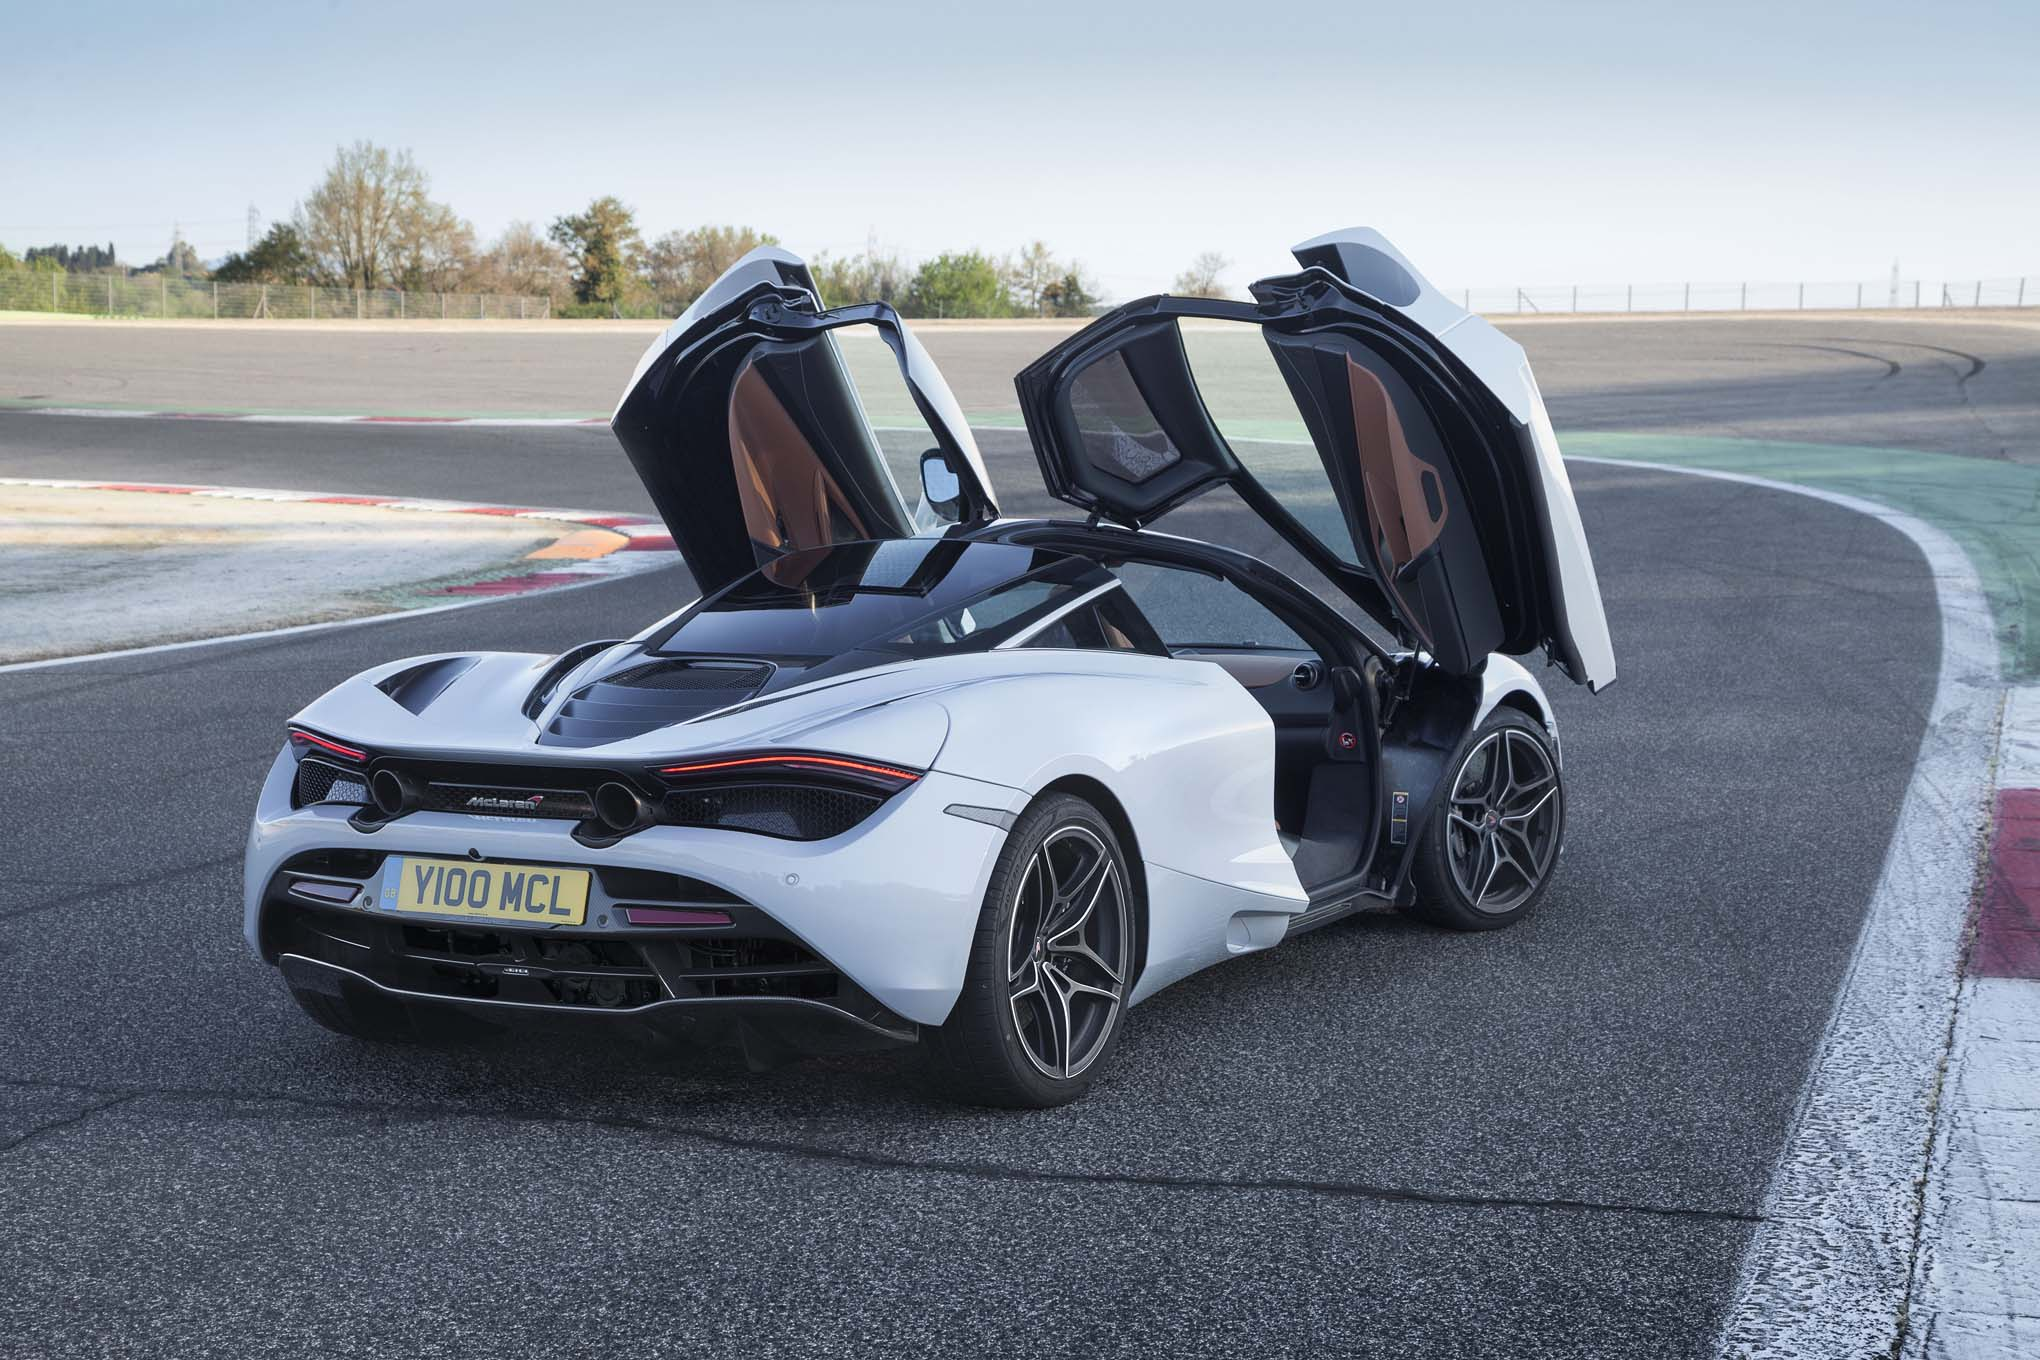 2018 mclaren 720s black. plain 720s by design mclaren 720s 8 show more with 2018 mclaren 720s black